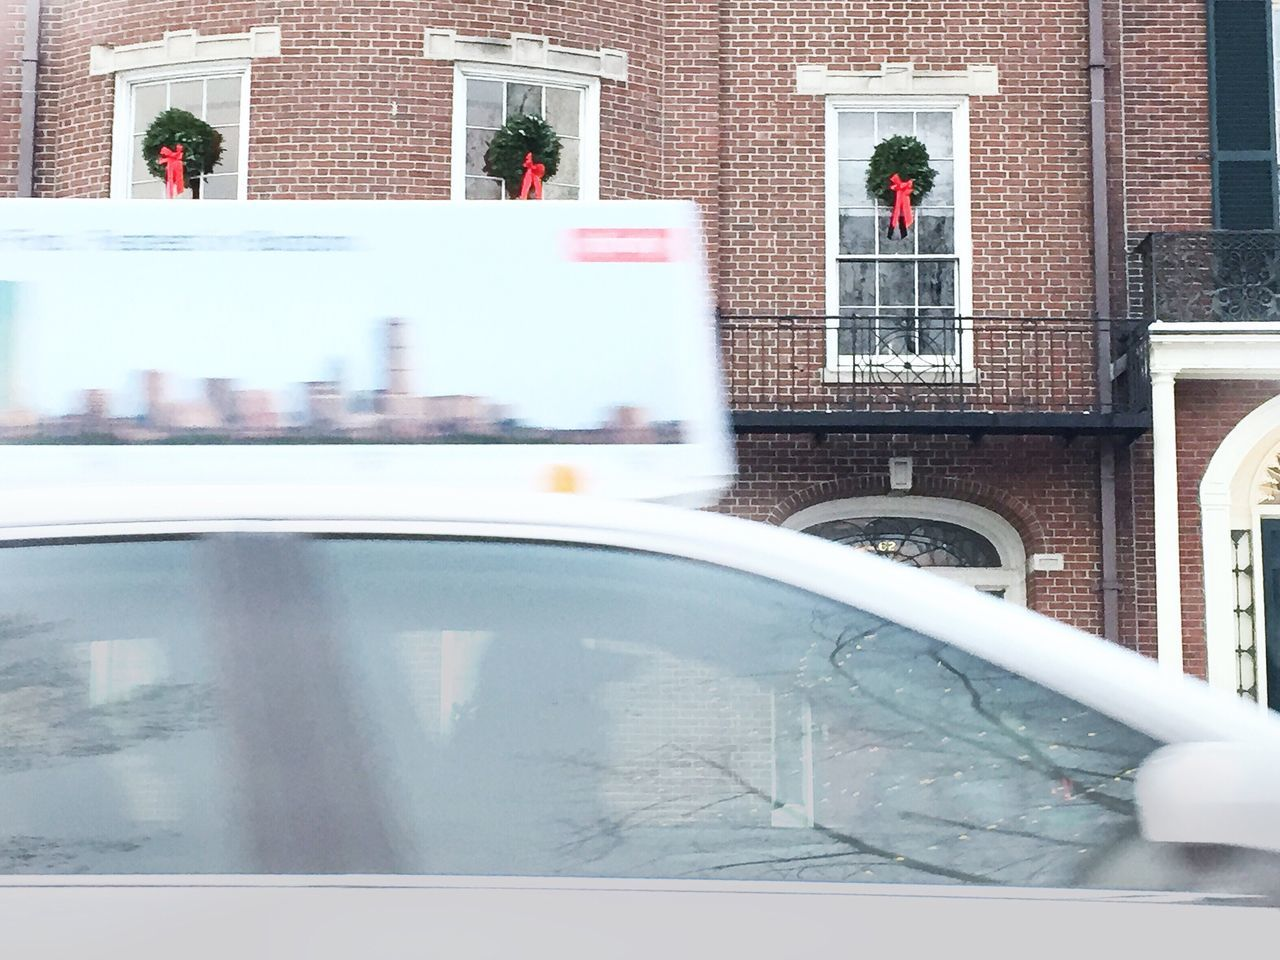 Brownstones and Boston cabby - Beacon Hill Historic City City Urban Holidays Windows Silhouette Through The Window Lowangle Decorations Motion